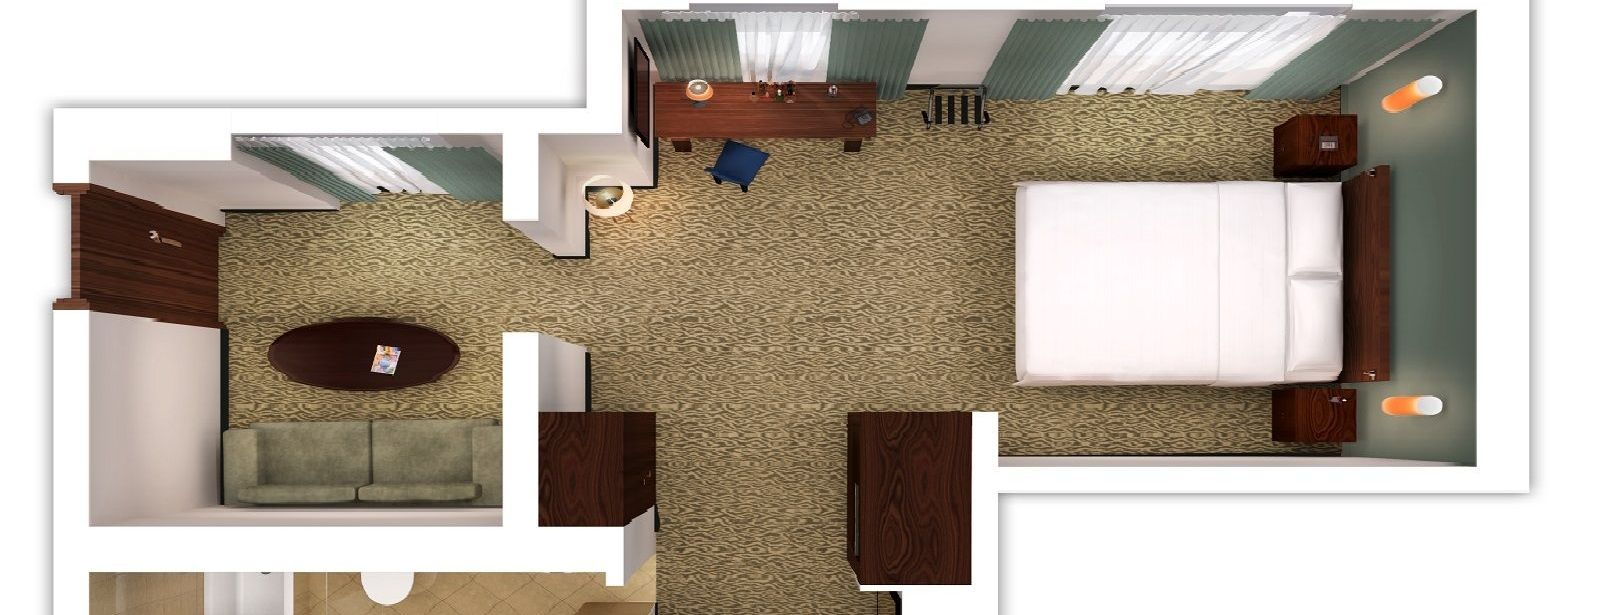 Family Suite - floorplan